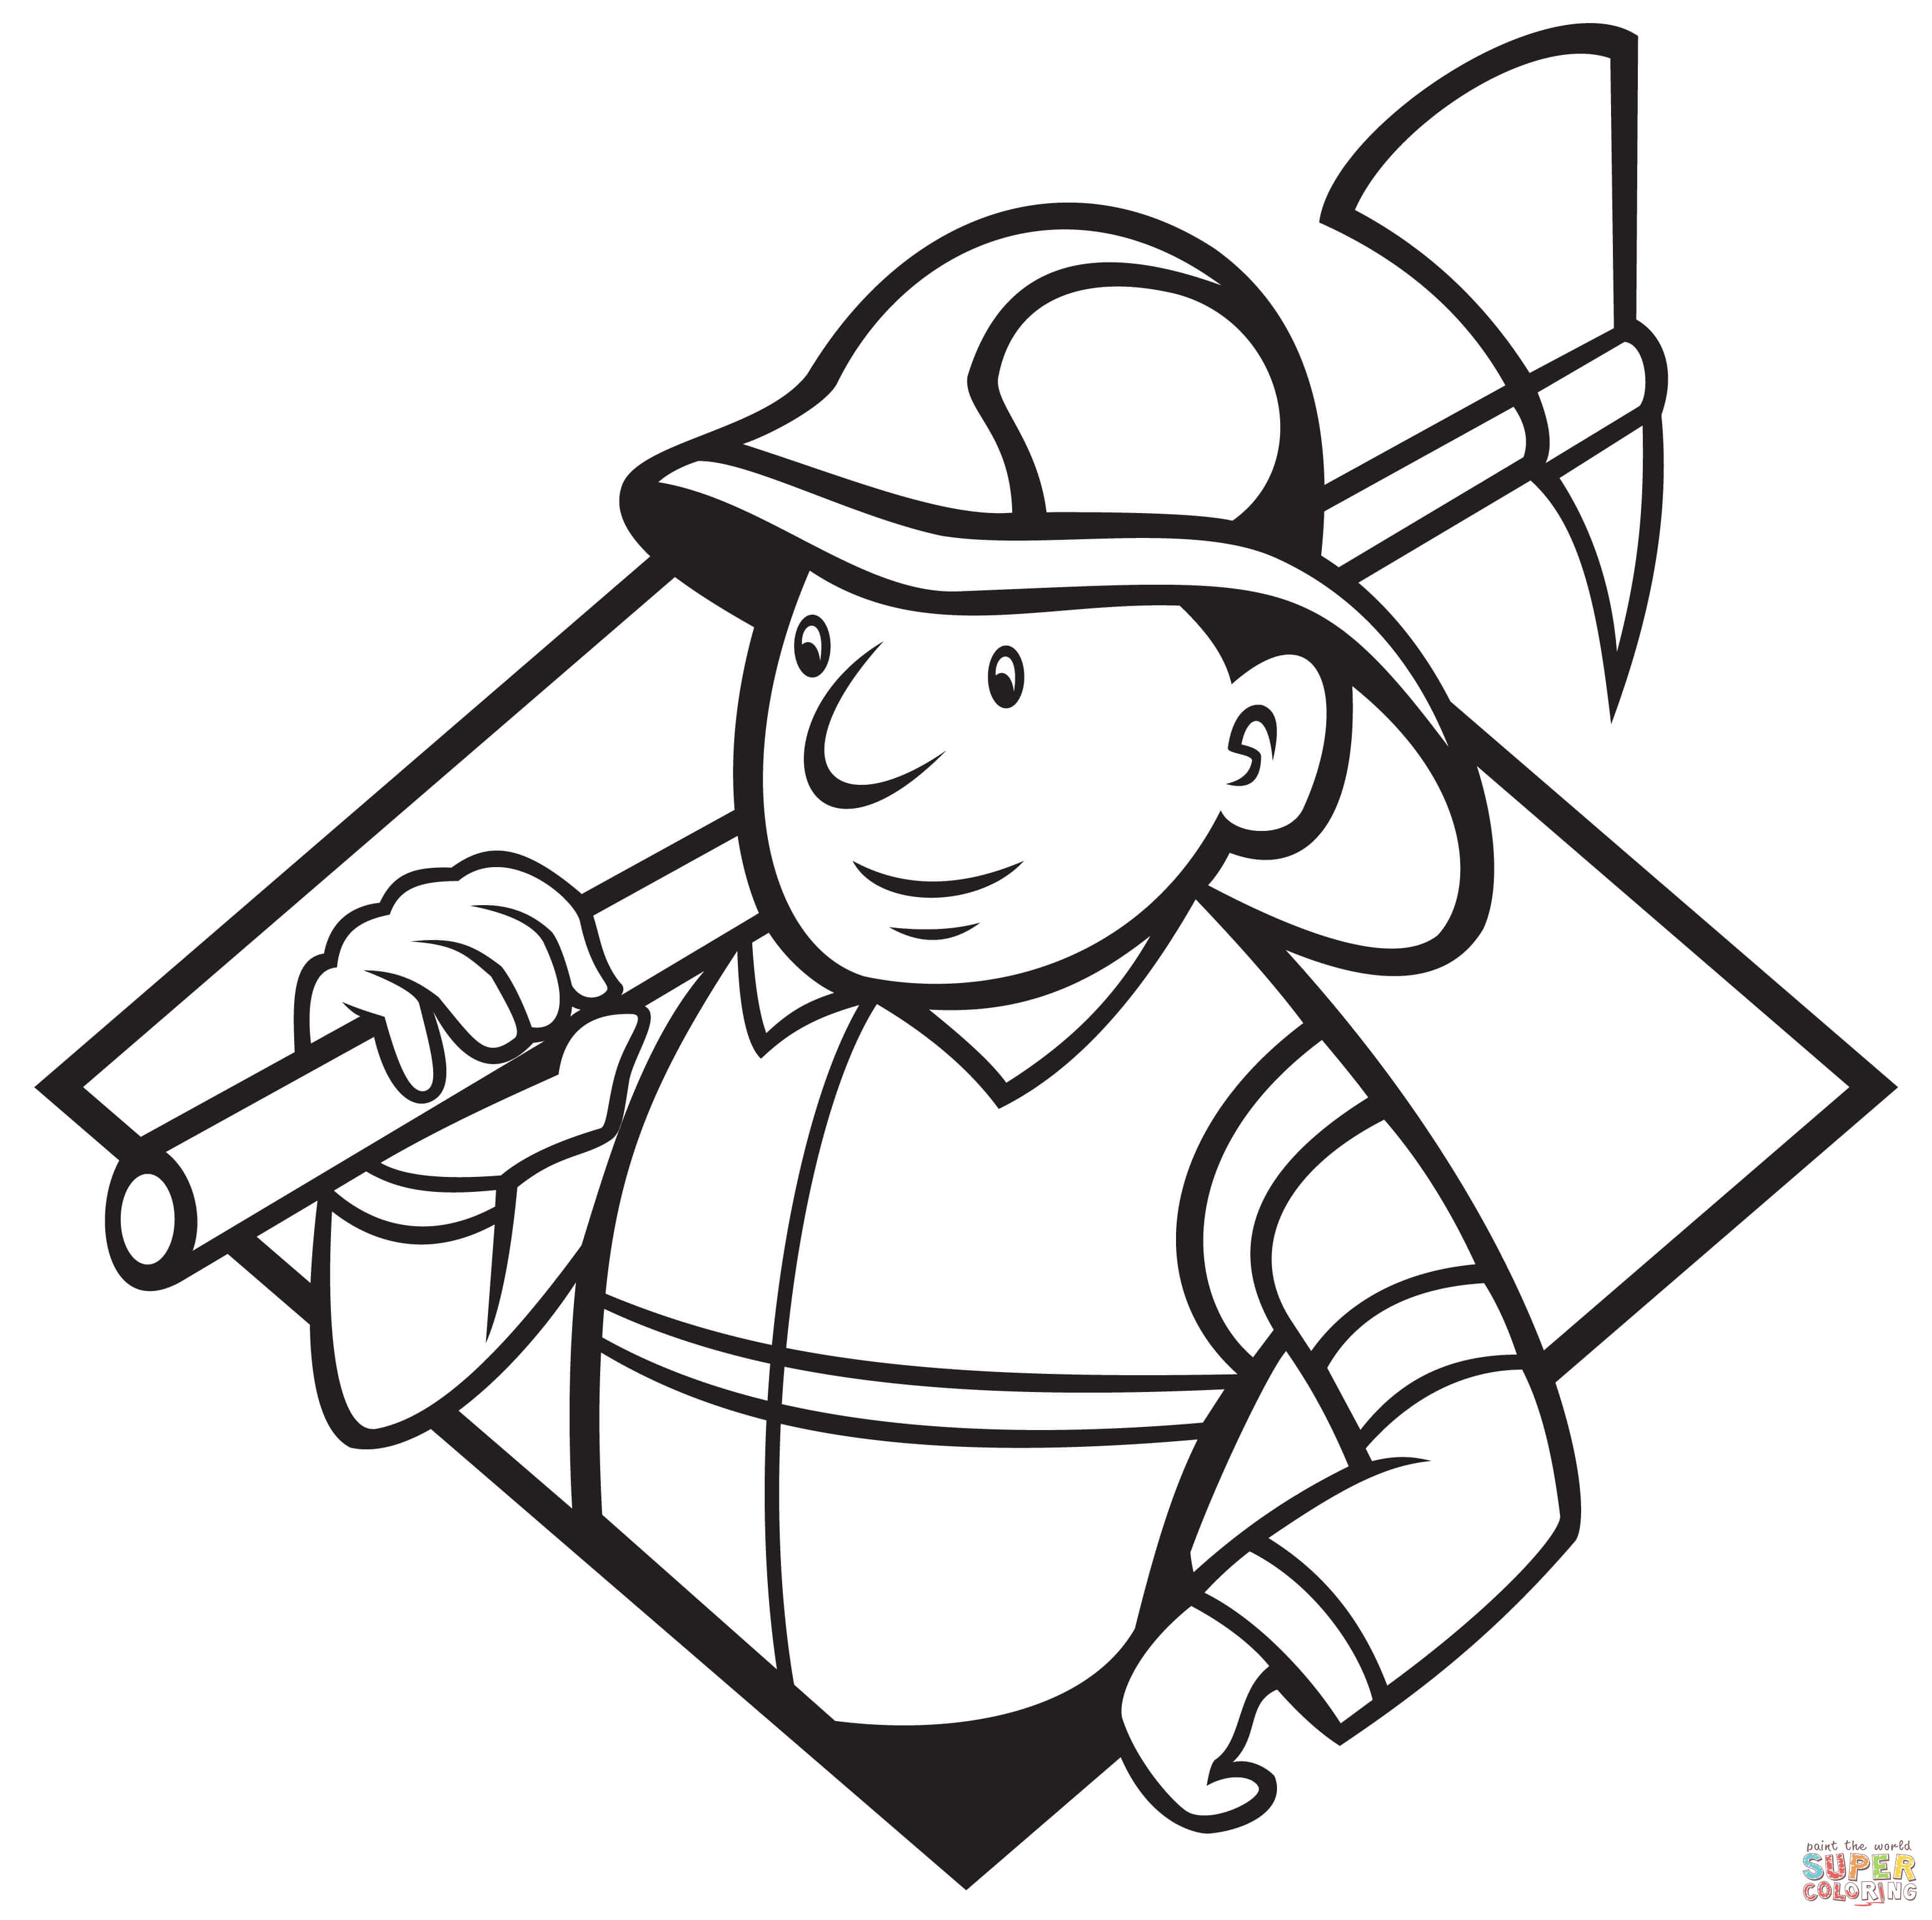 3100x3080 Fire Department Coloring Pages Free Printable Pictures Fire